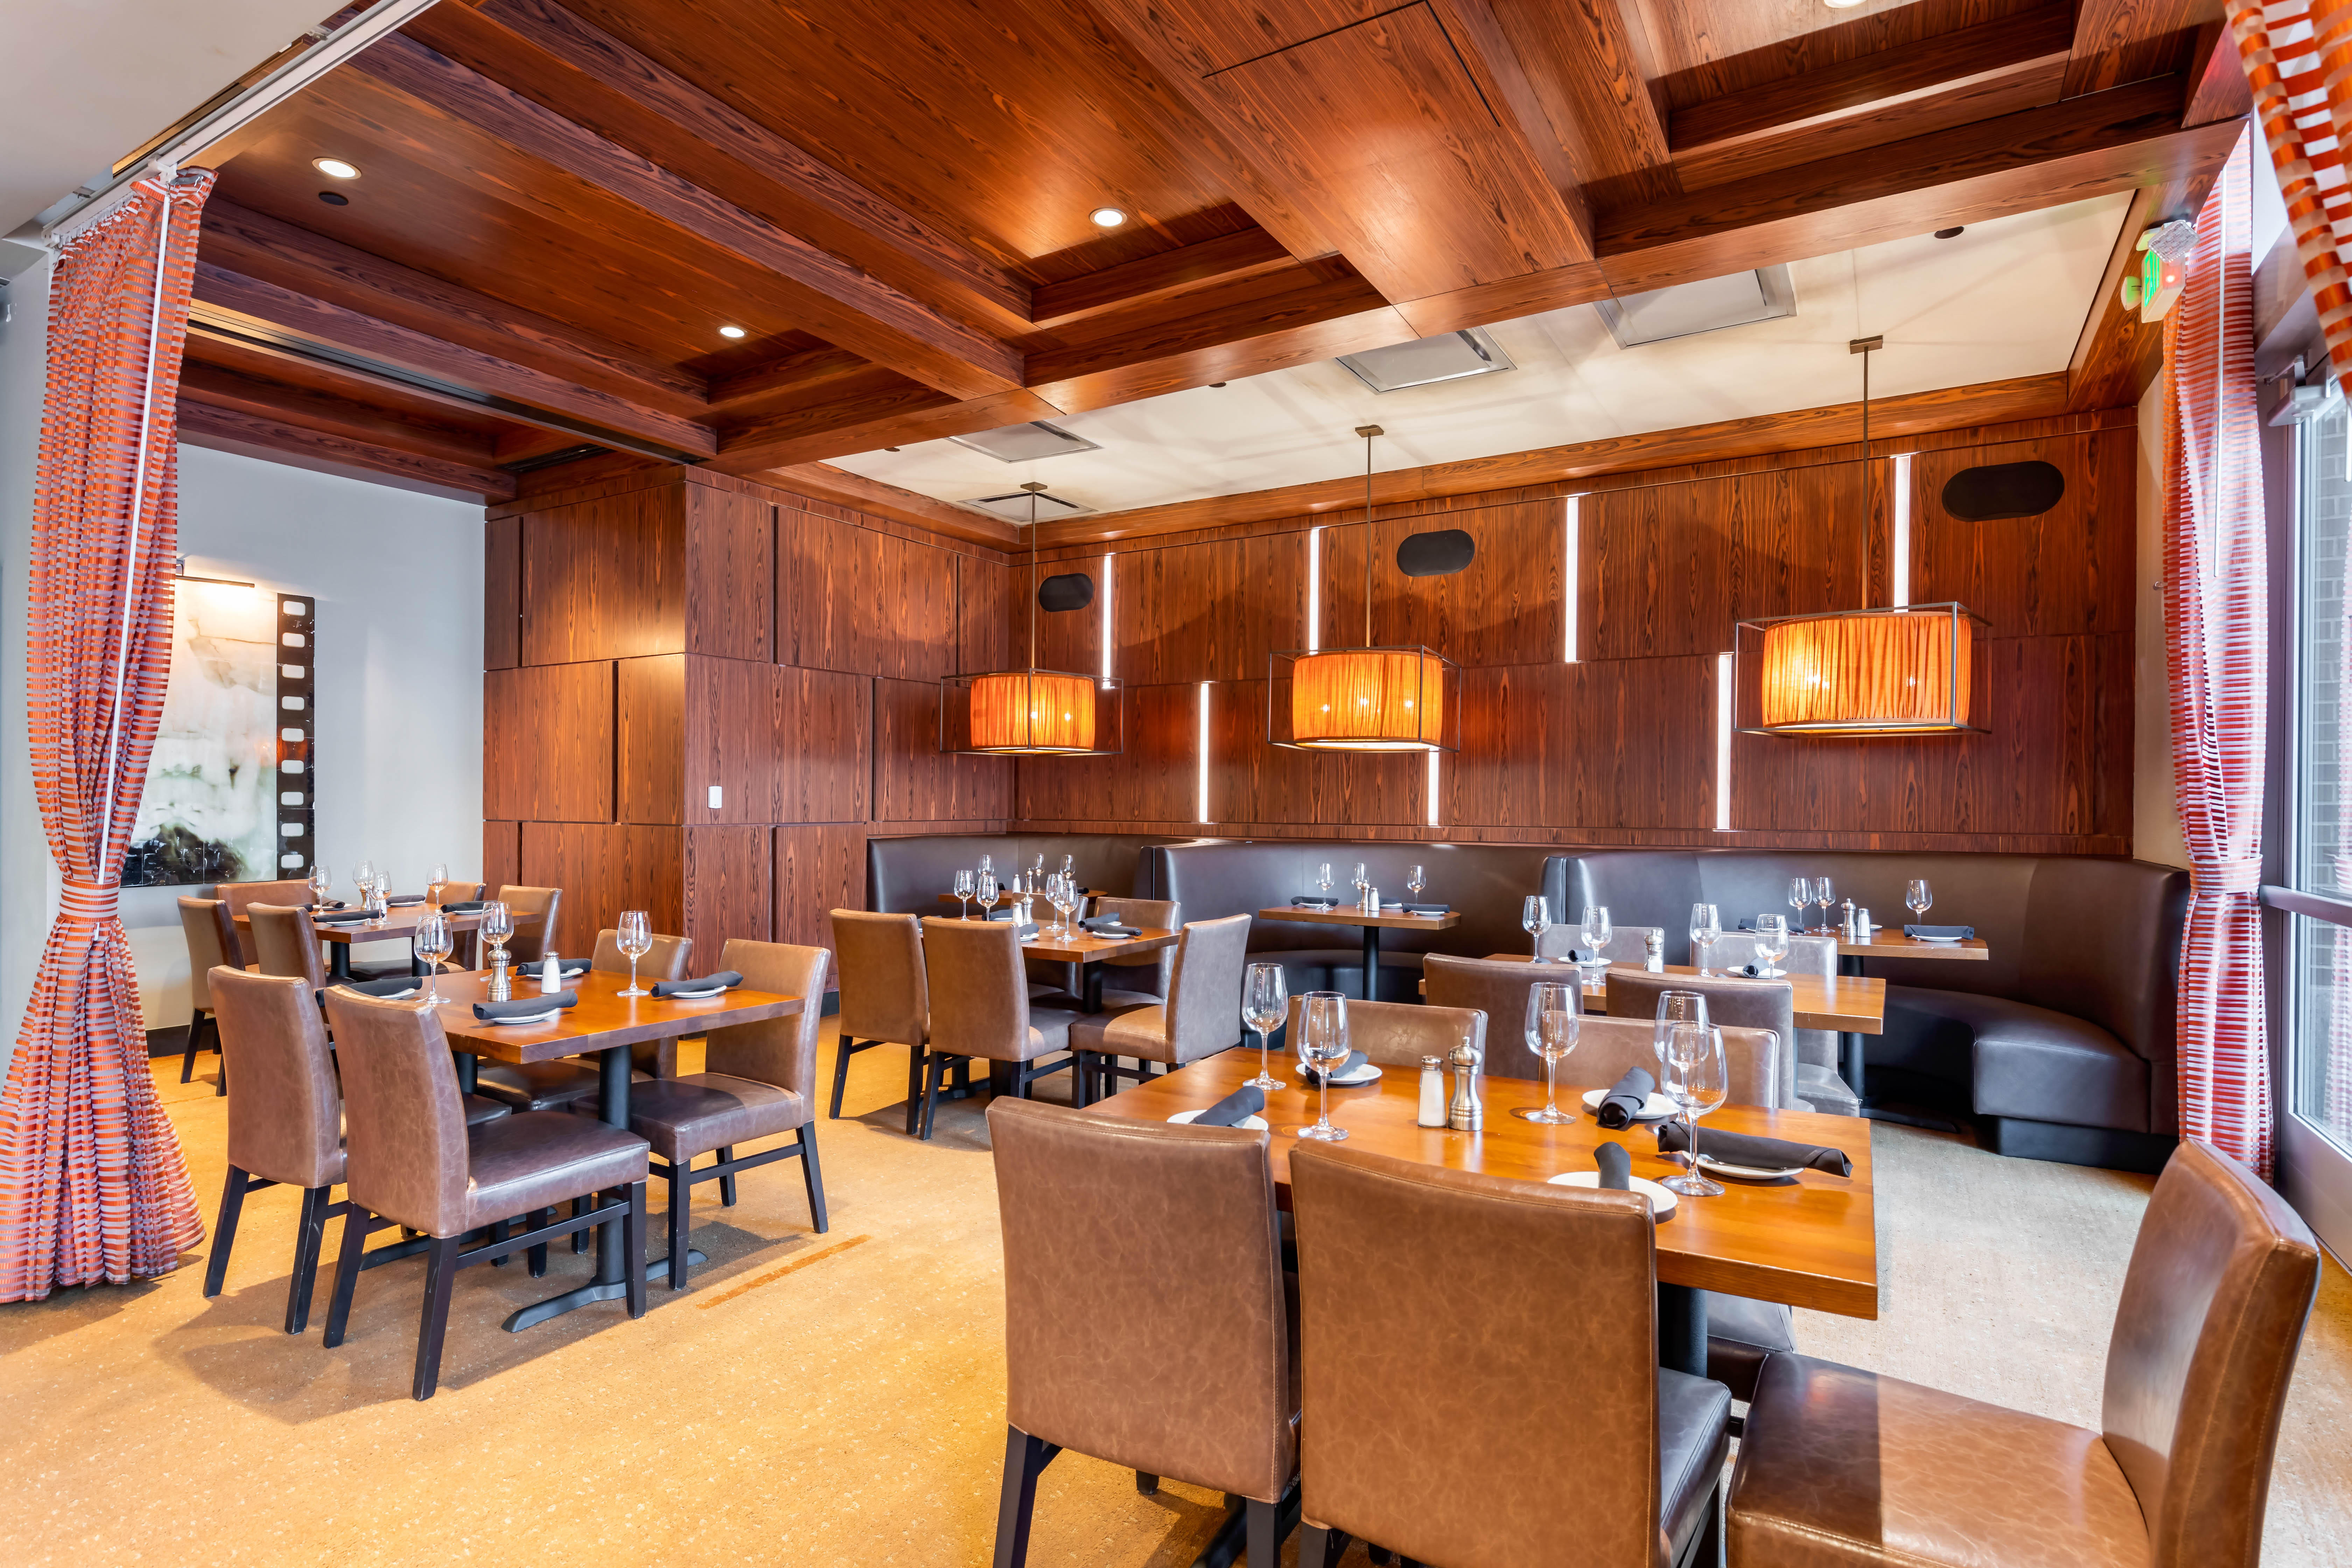 Del Frisco's Grille Fort Worth Cassidy Room group dining room